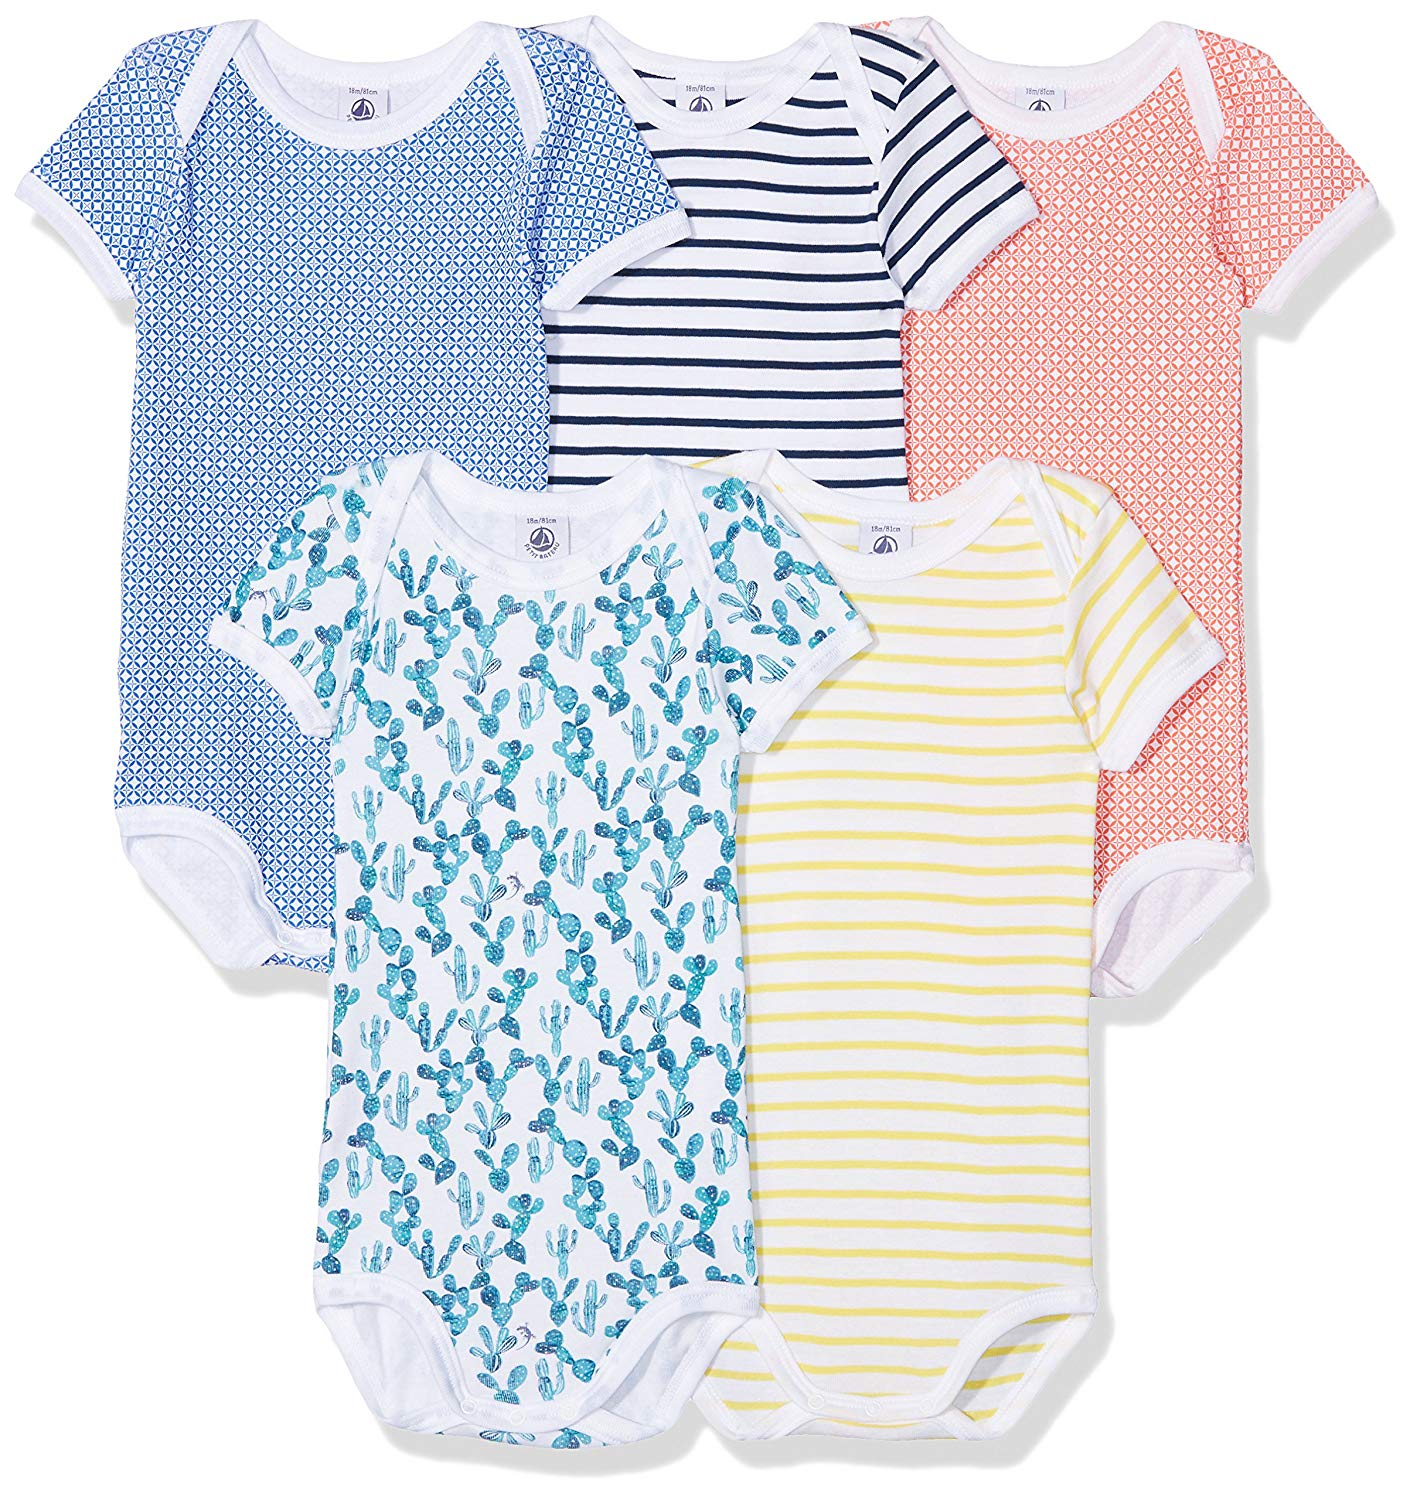 7db81859163 Get Quotations · Petit Bateau Baby Boys Short Sleeves Bodysuits 5 Pack  Sizes 3-36 Months Style 27625